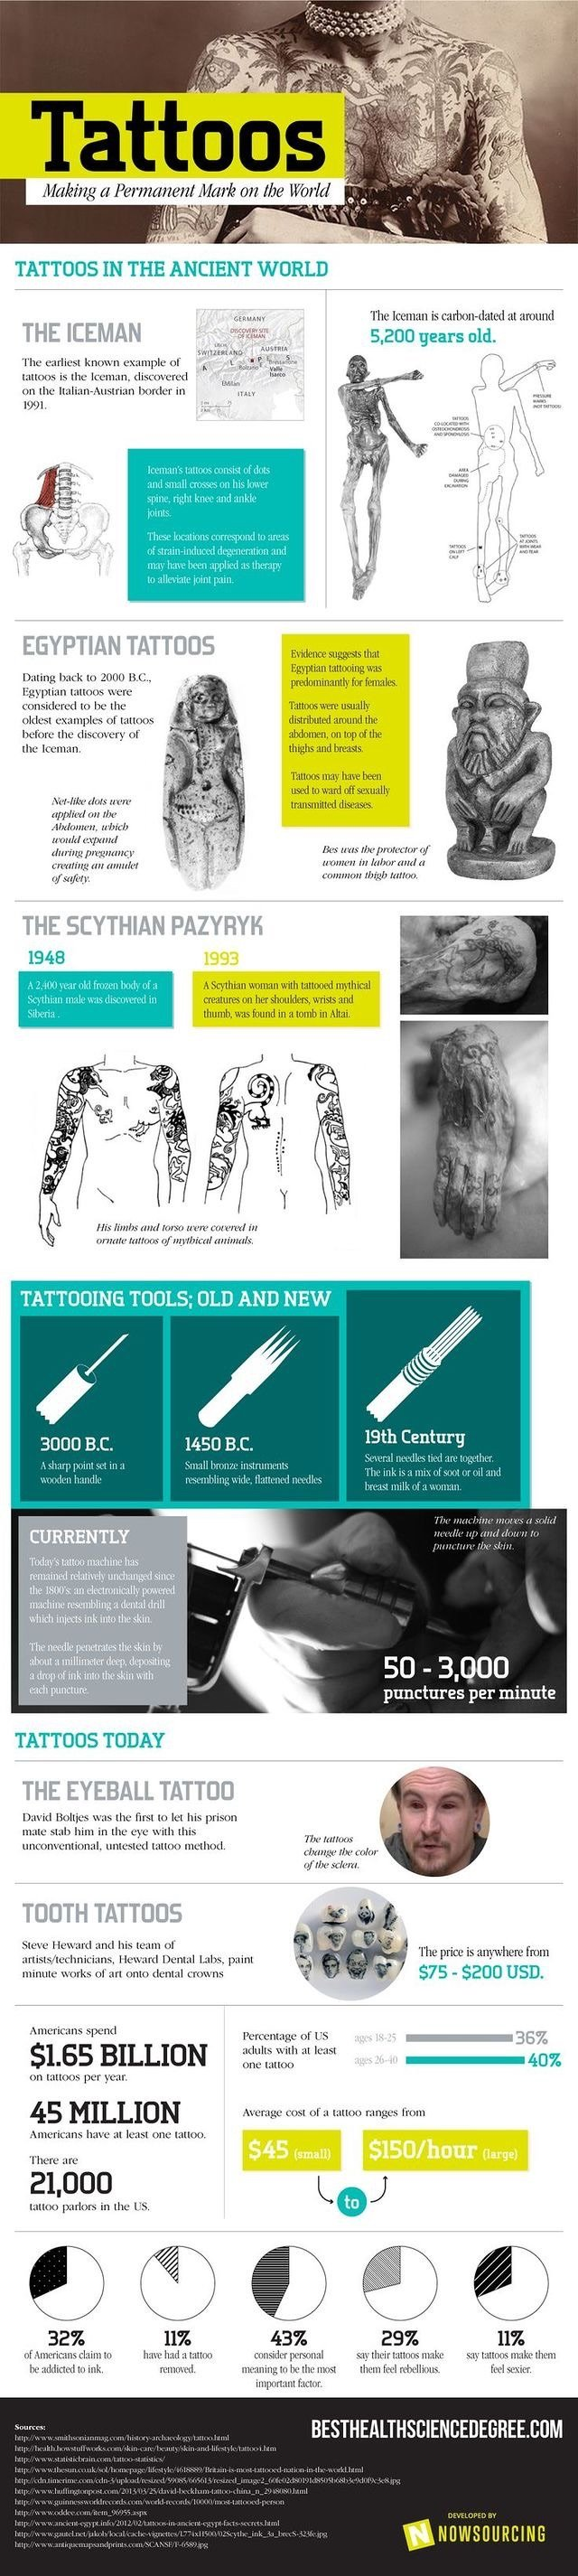 Tattoo #Infographic that tells you all what you need to know about #Tattoos